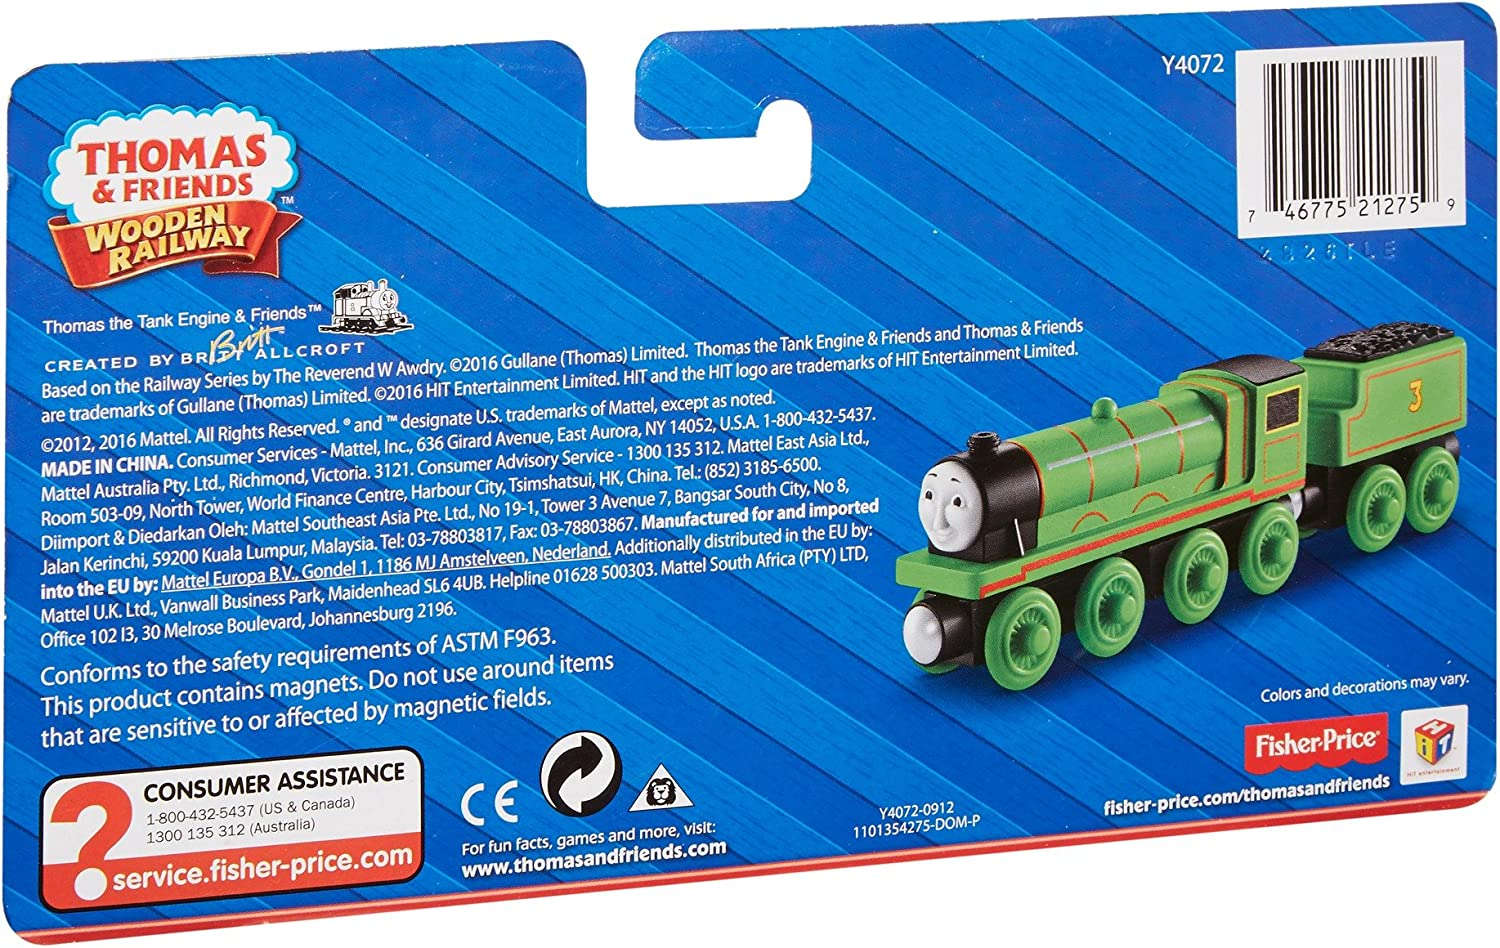 Henry the Green Engine Thomas And Friends Wooden Railway Handmade From Real Wood